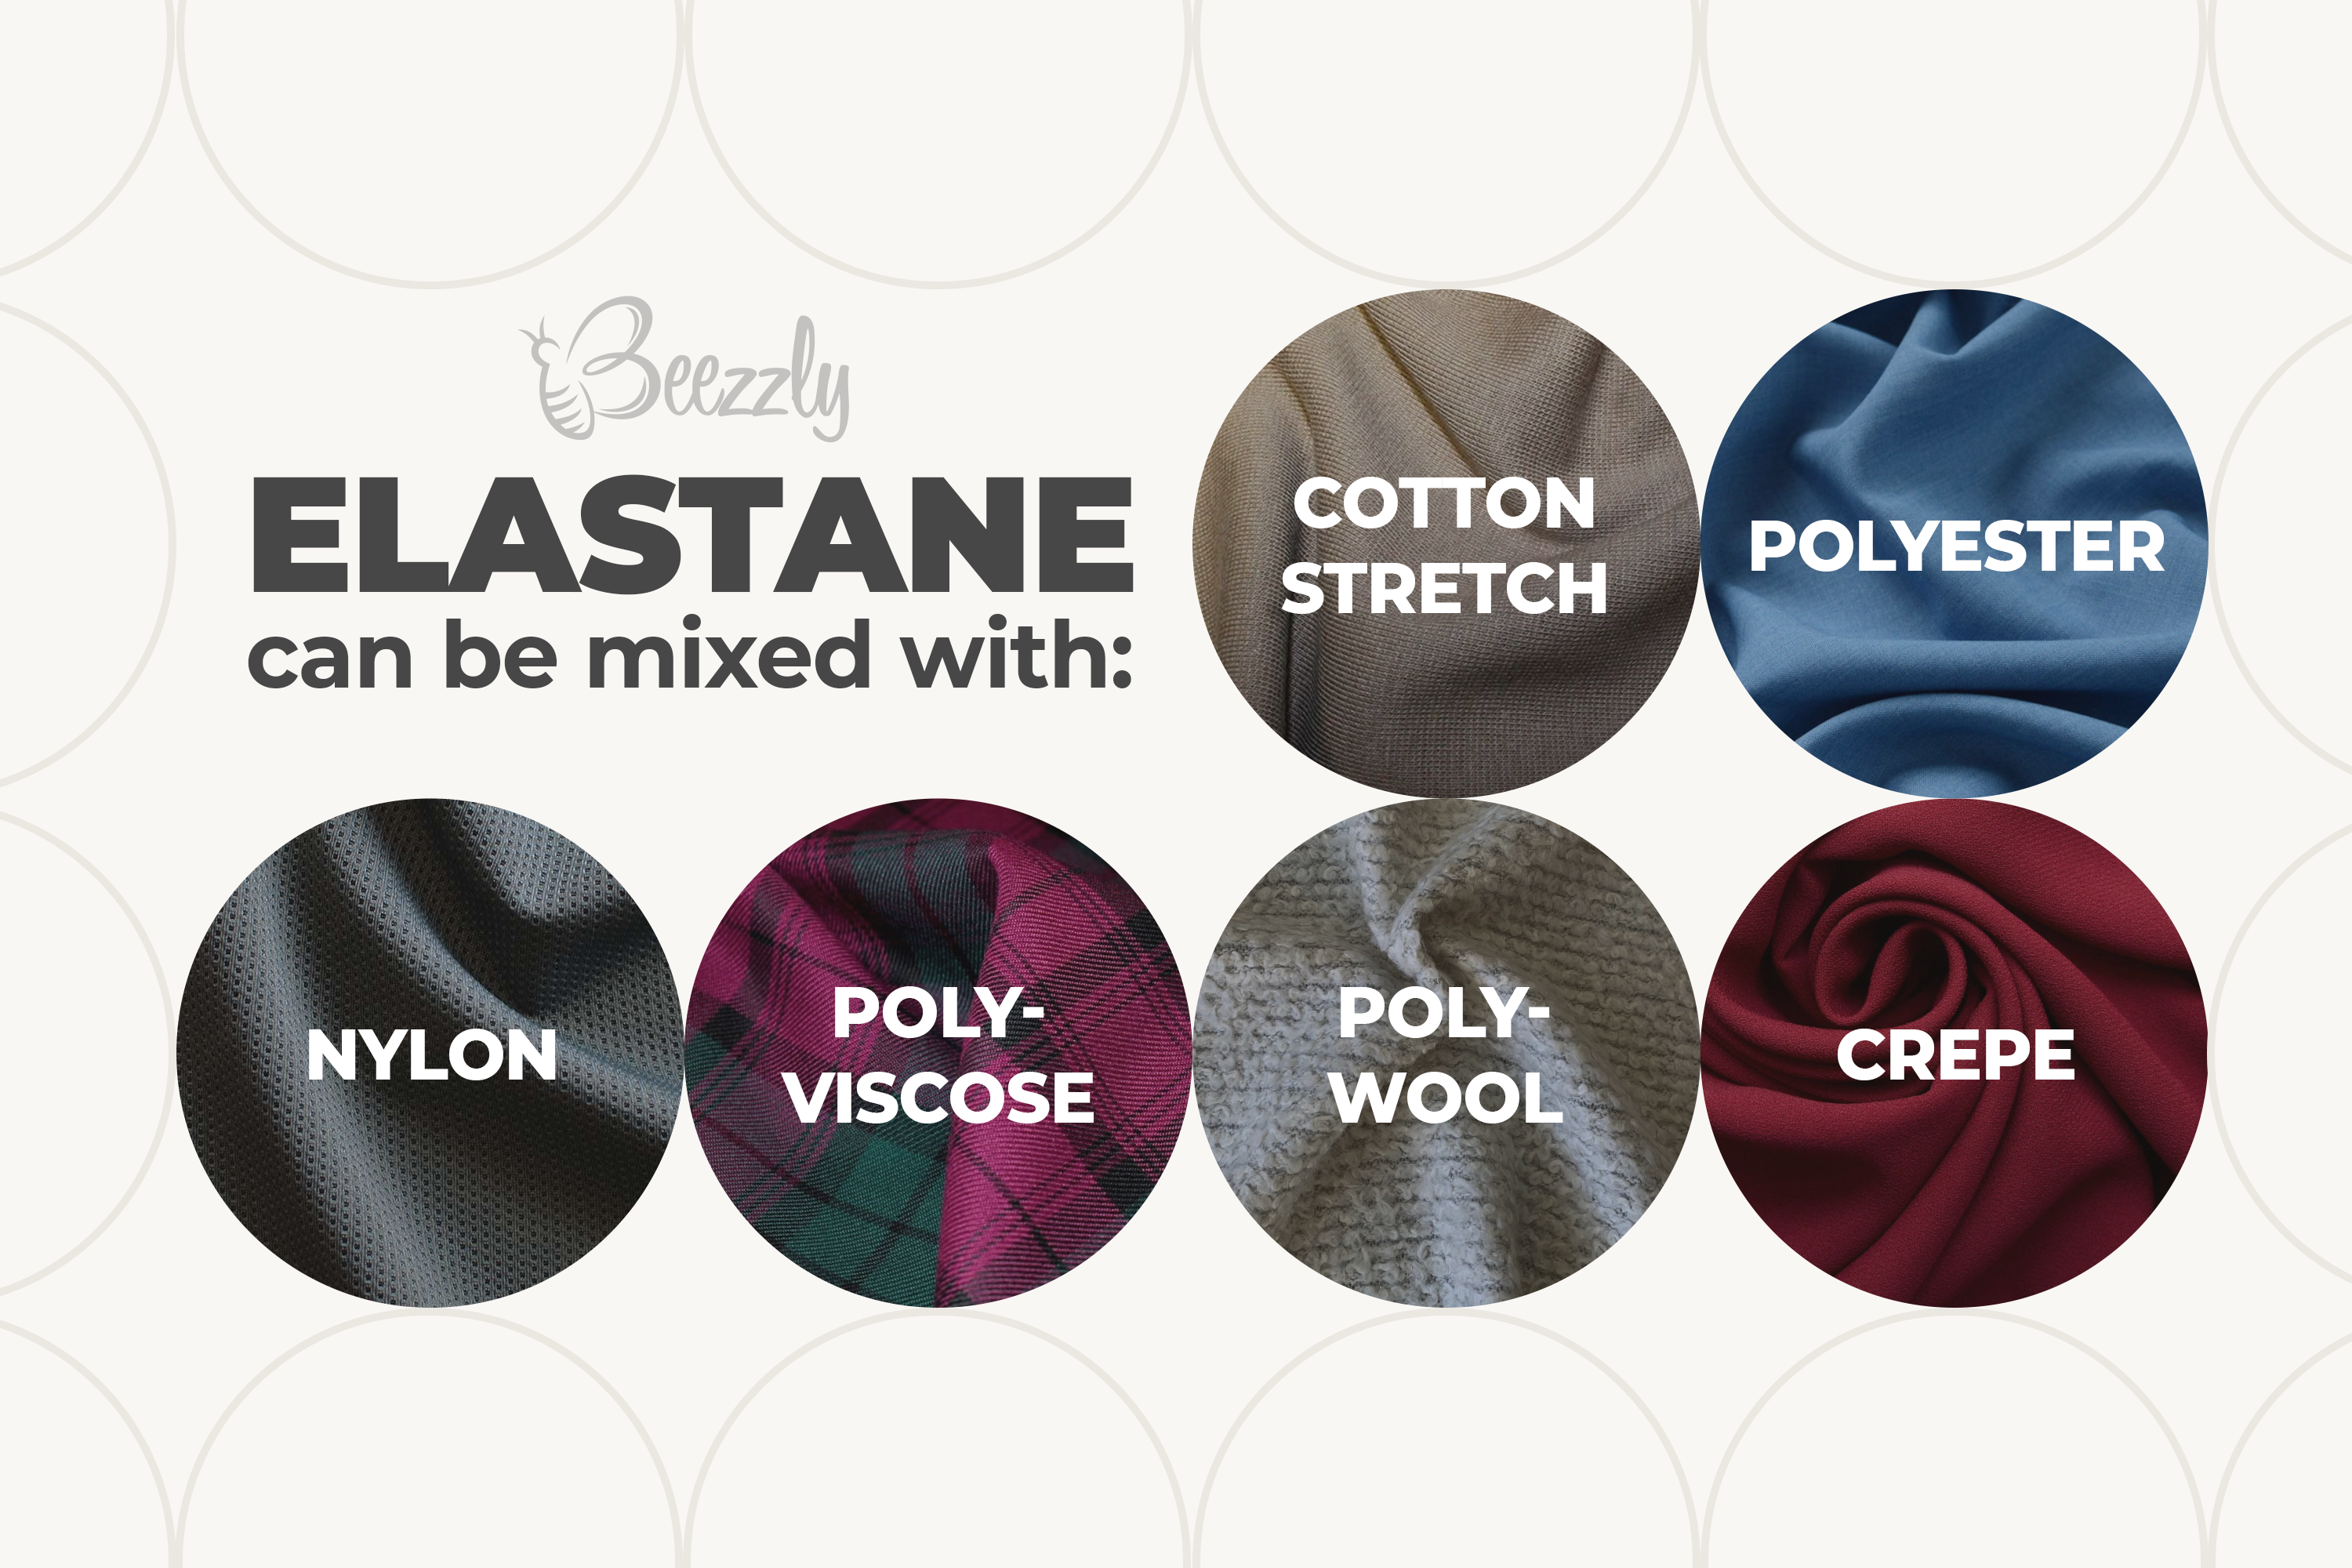 elastane can be mixed with